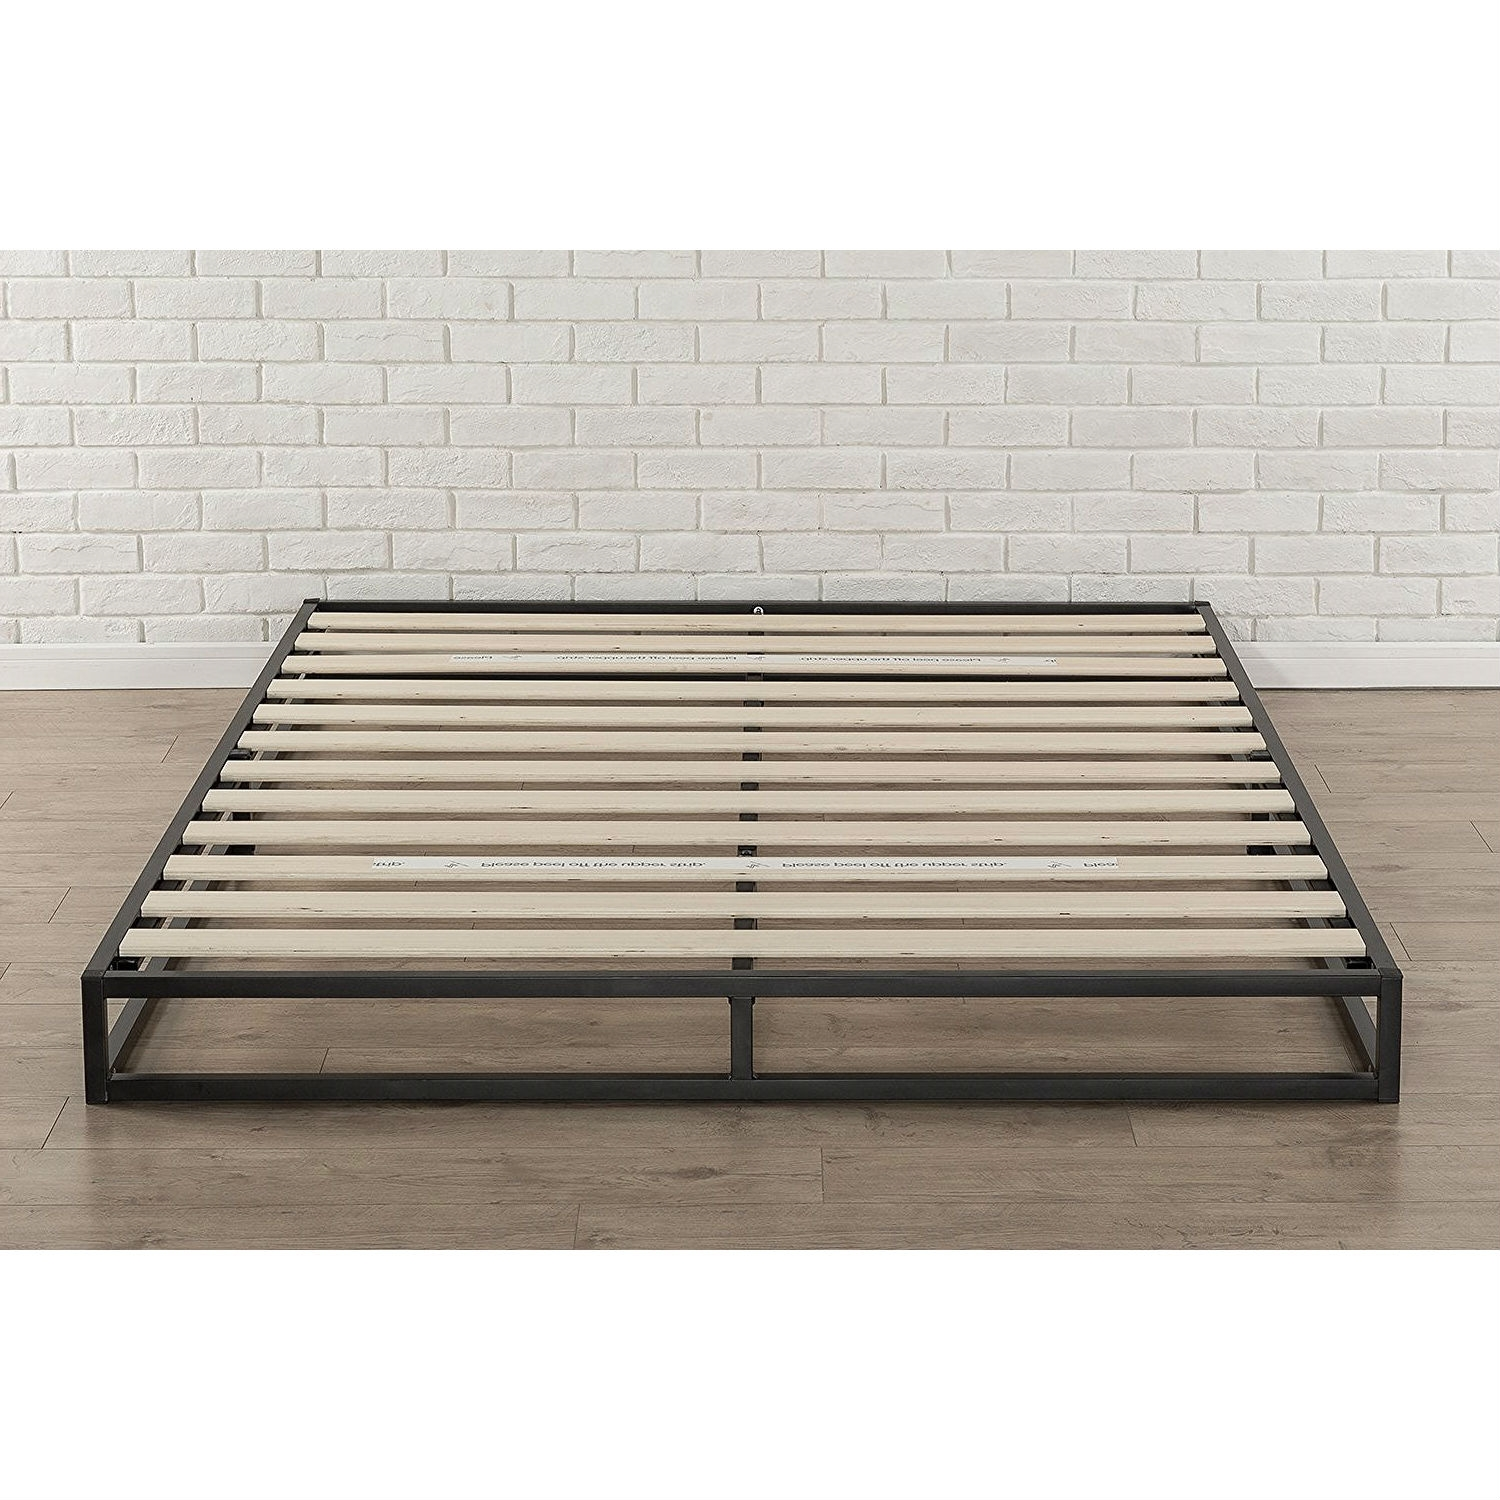 retail price 18900 - Low Profile Twin Bed Frame